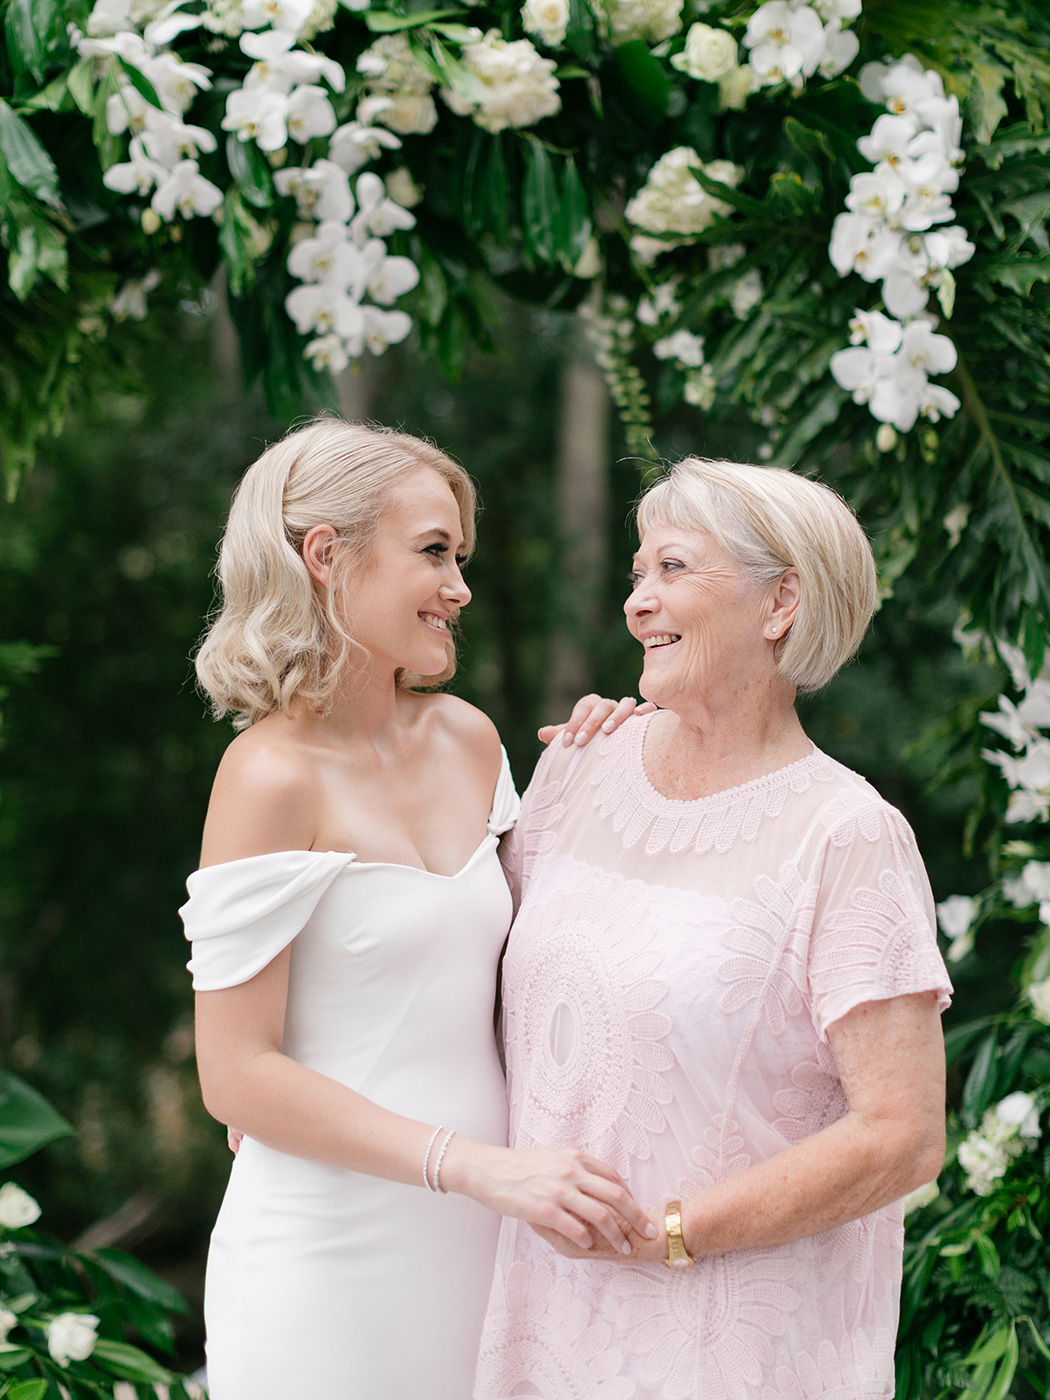 Bride & Grandmother | Rensche Mari